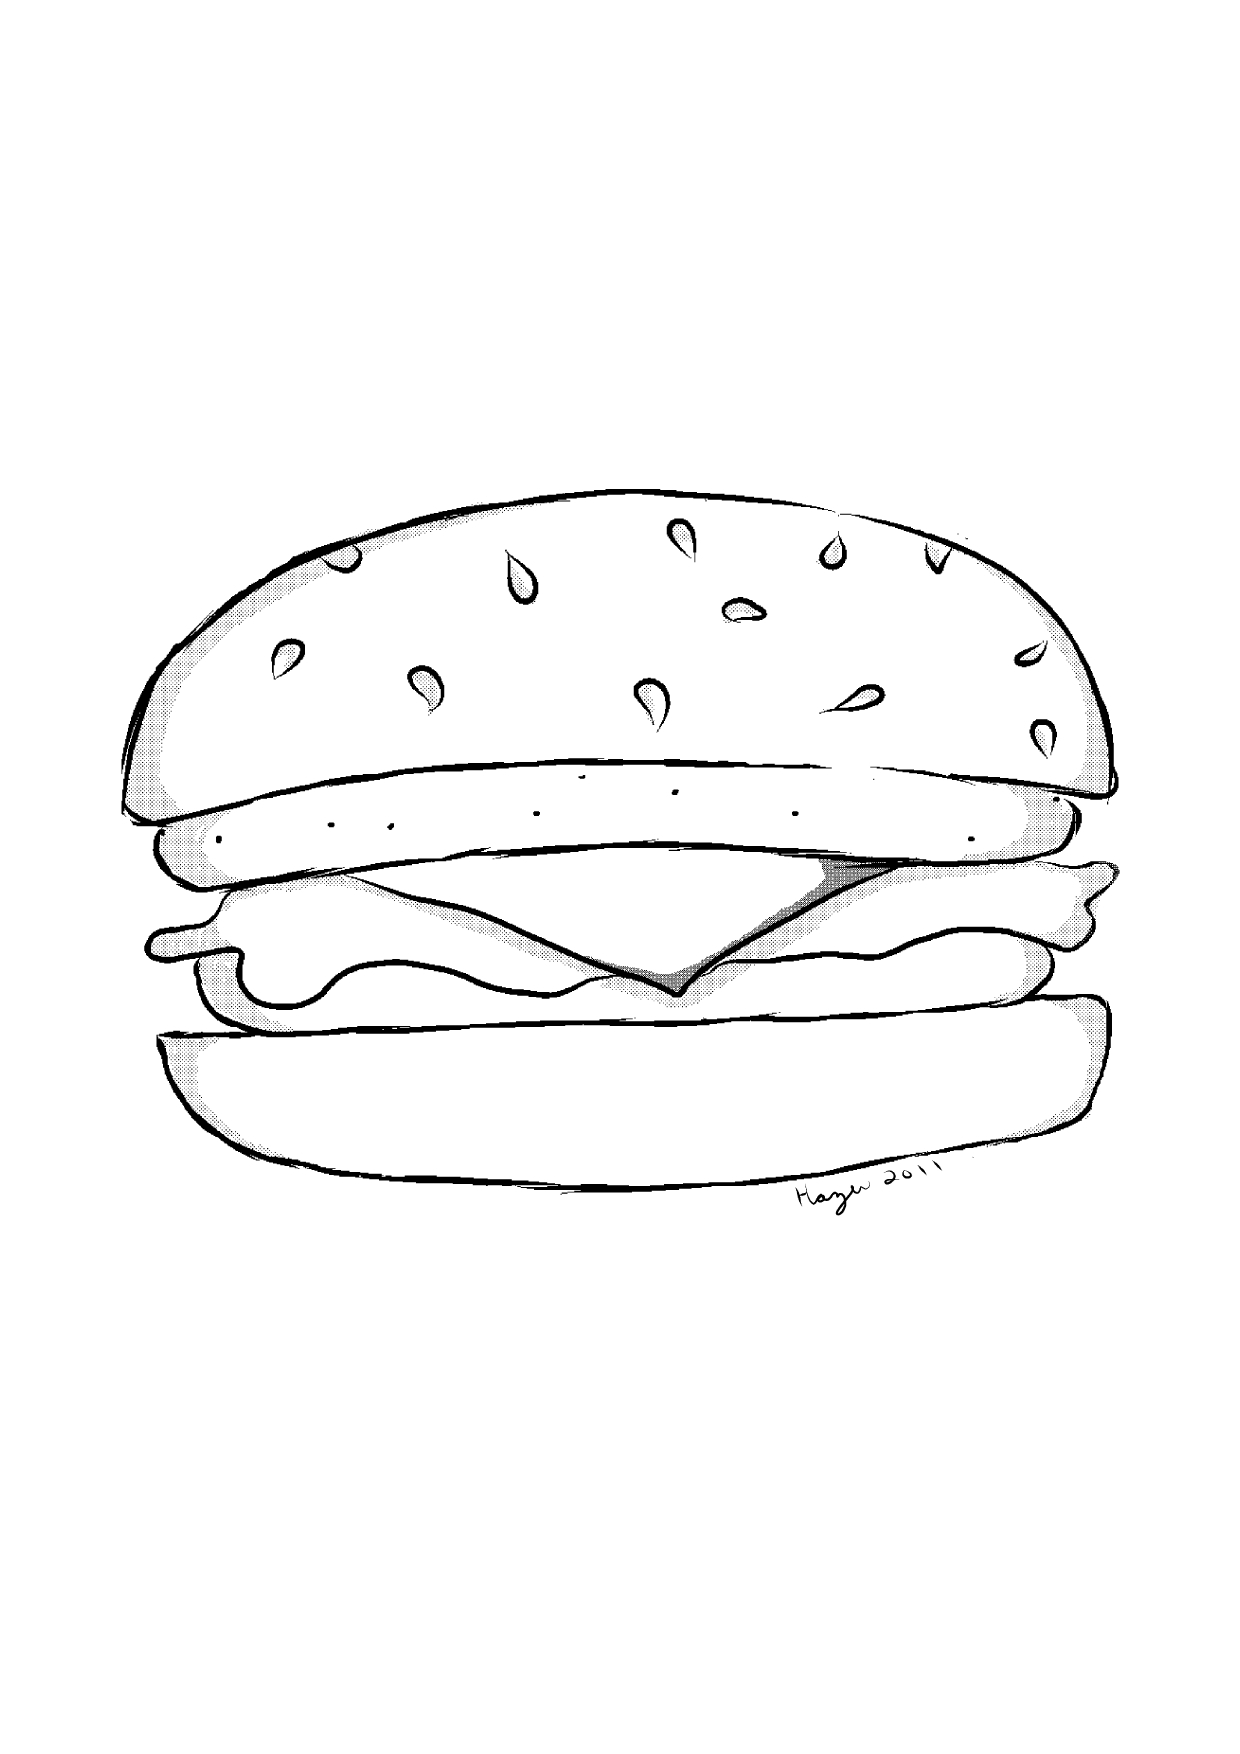 Cheeseburger - Line Art by Hazuhazuheavn on DeviantArt